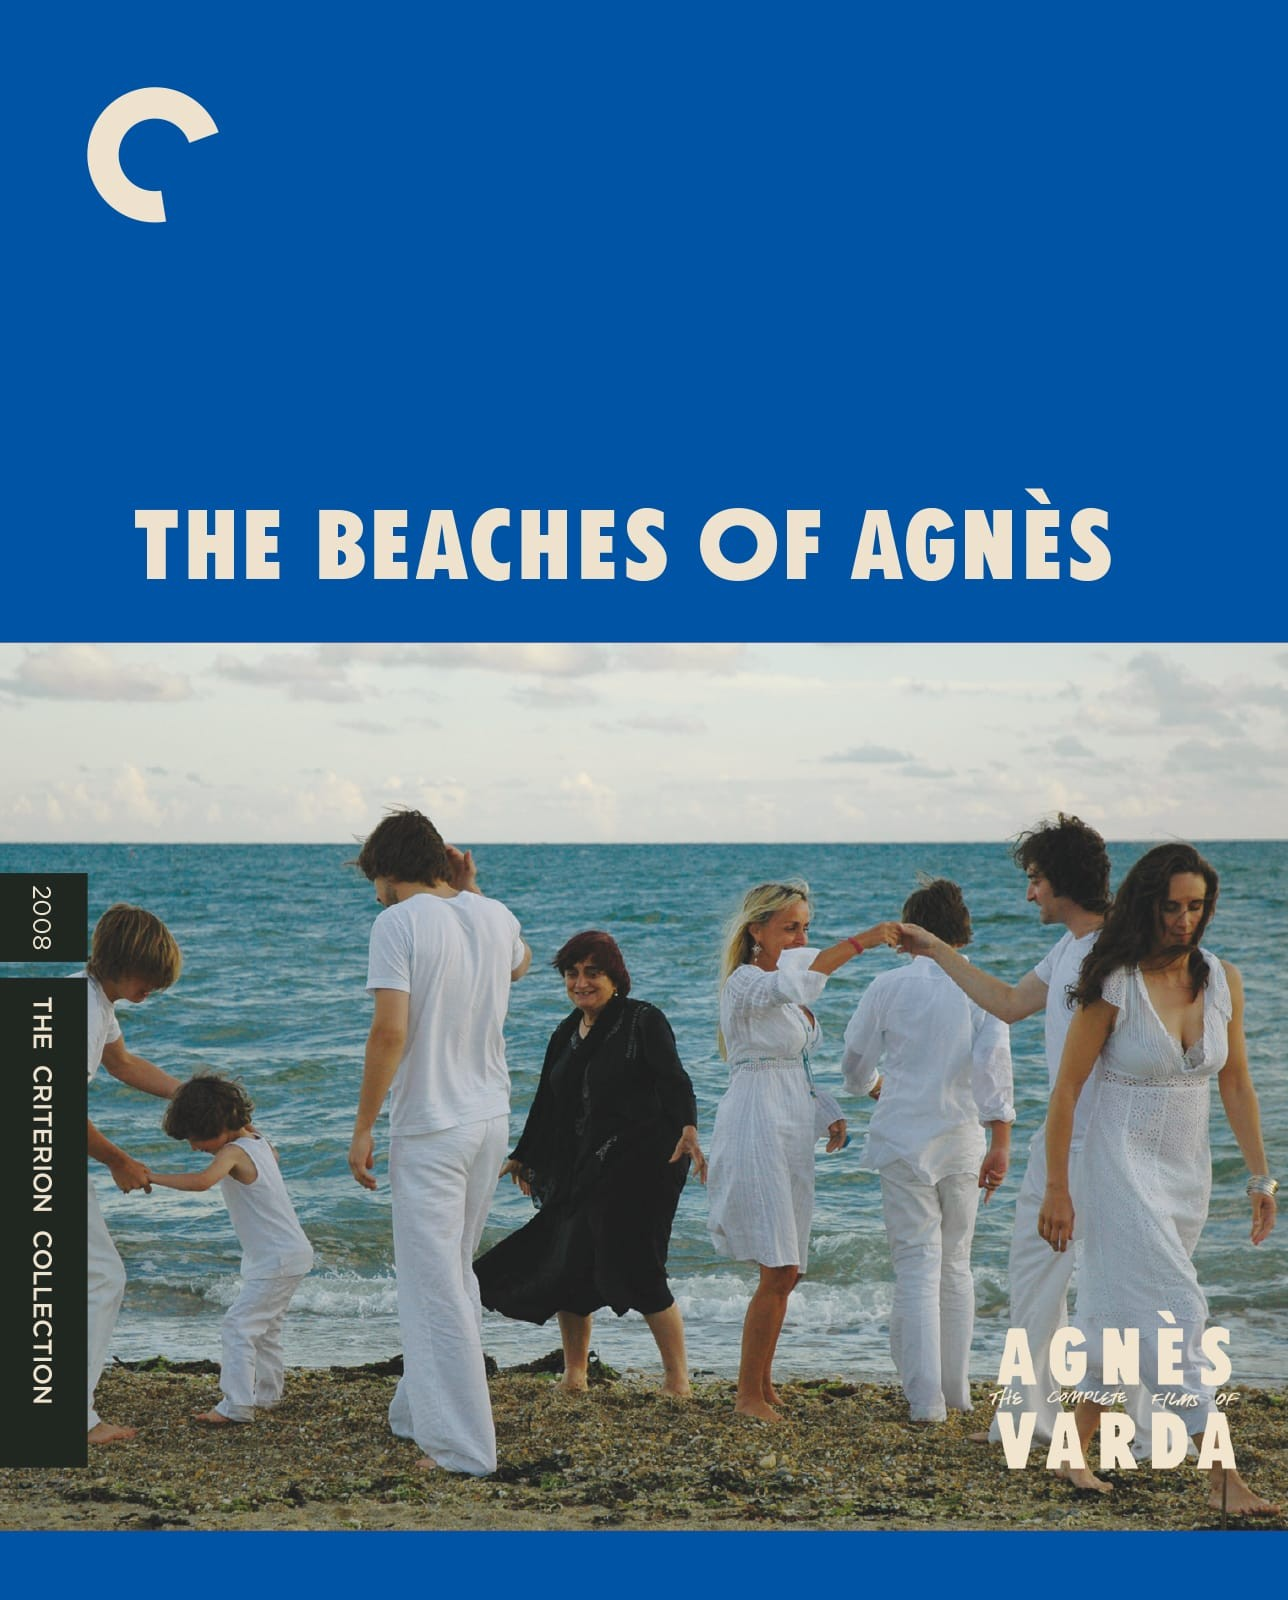 The Beaches of Agnès